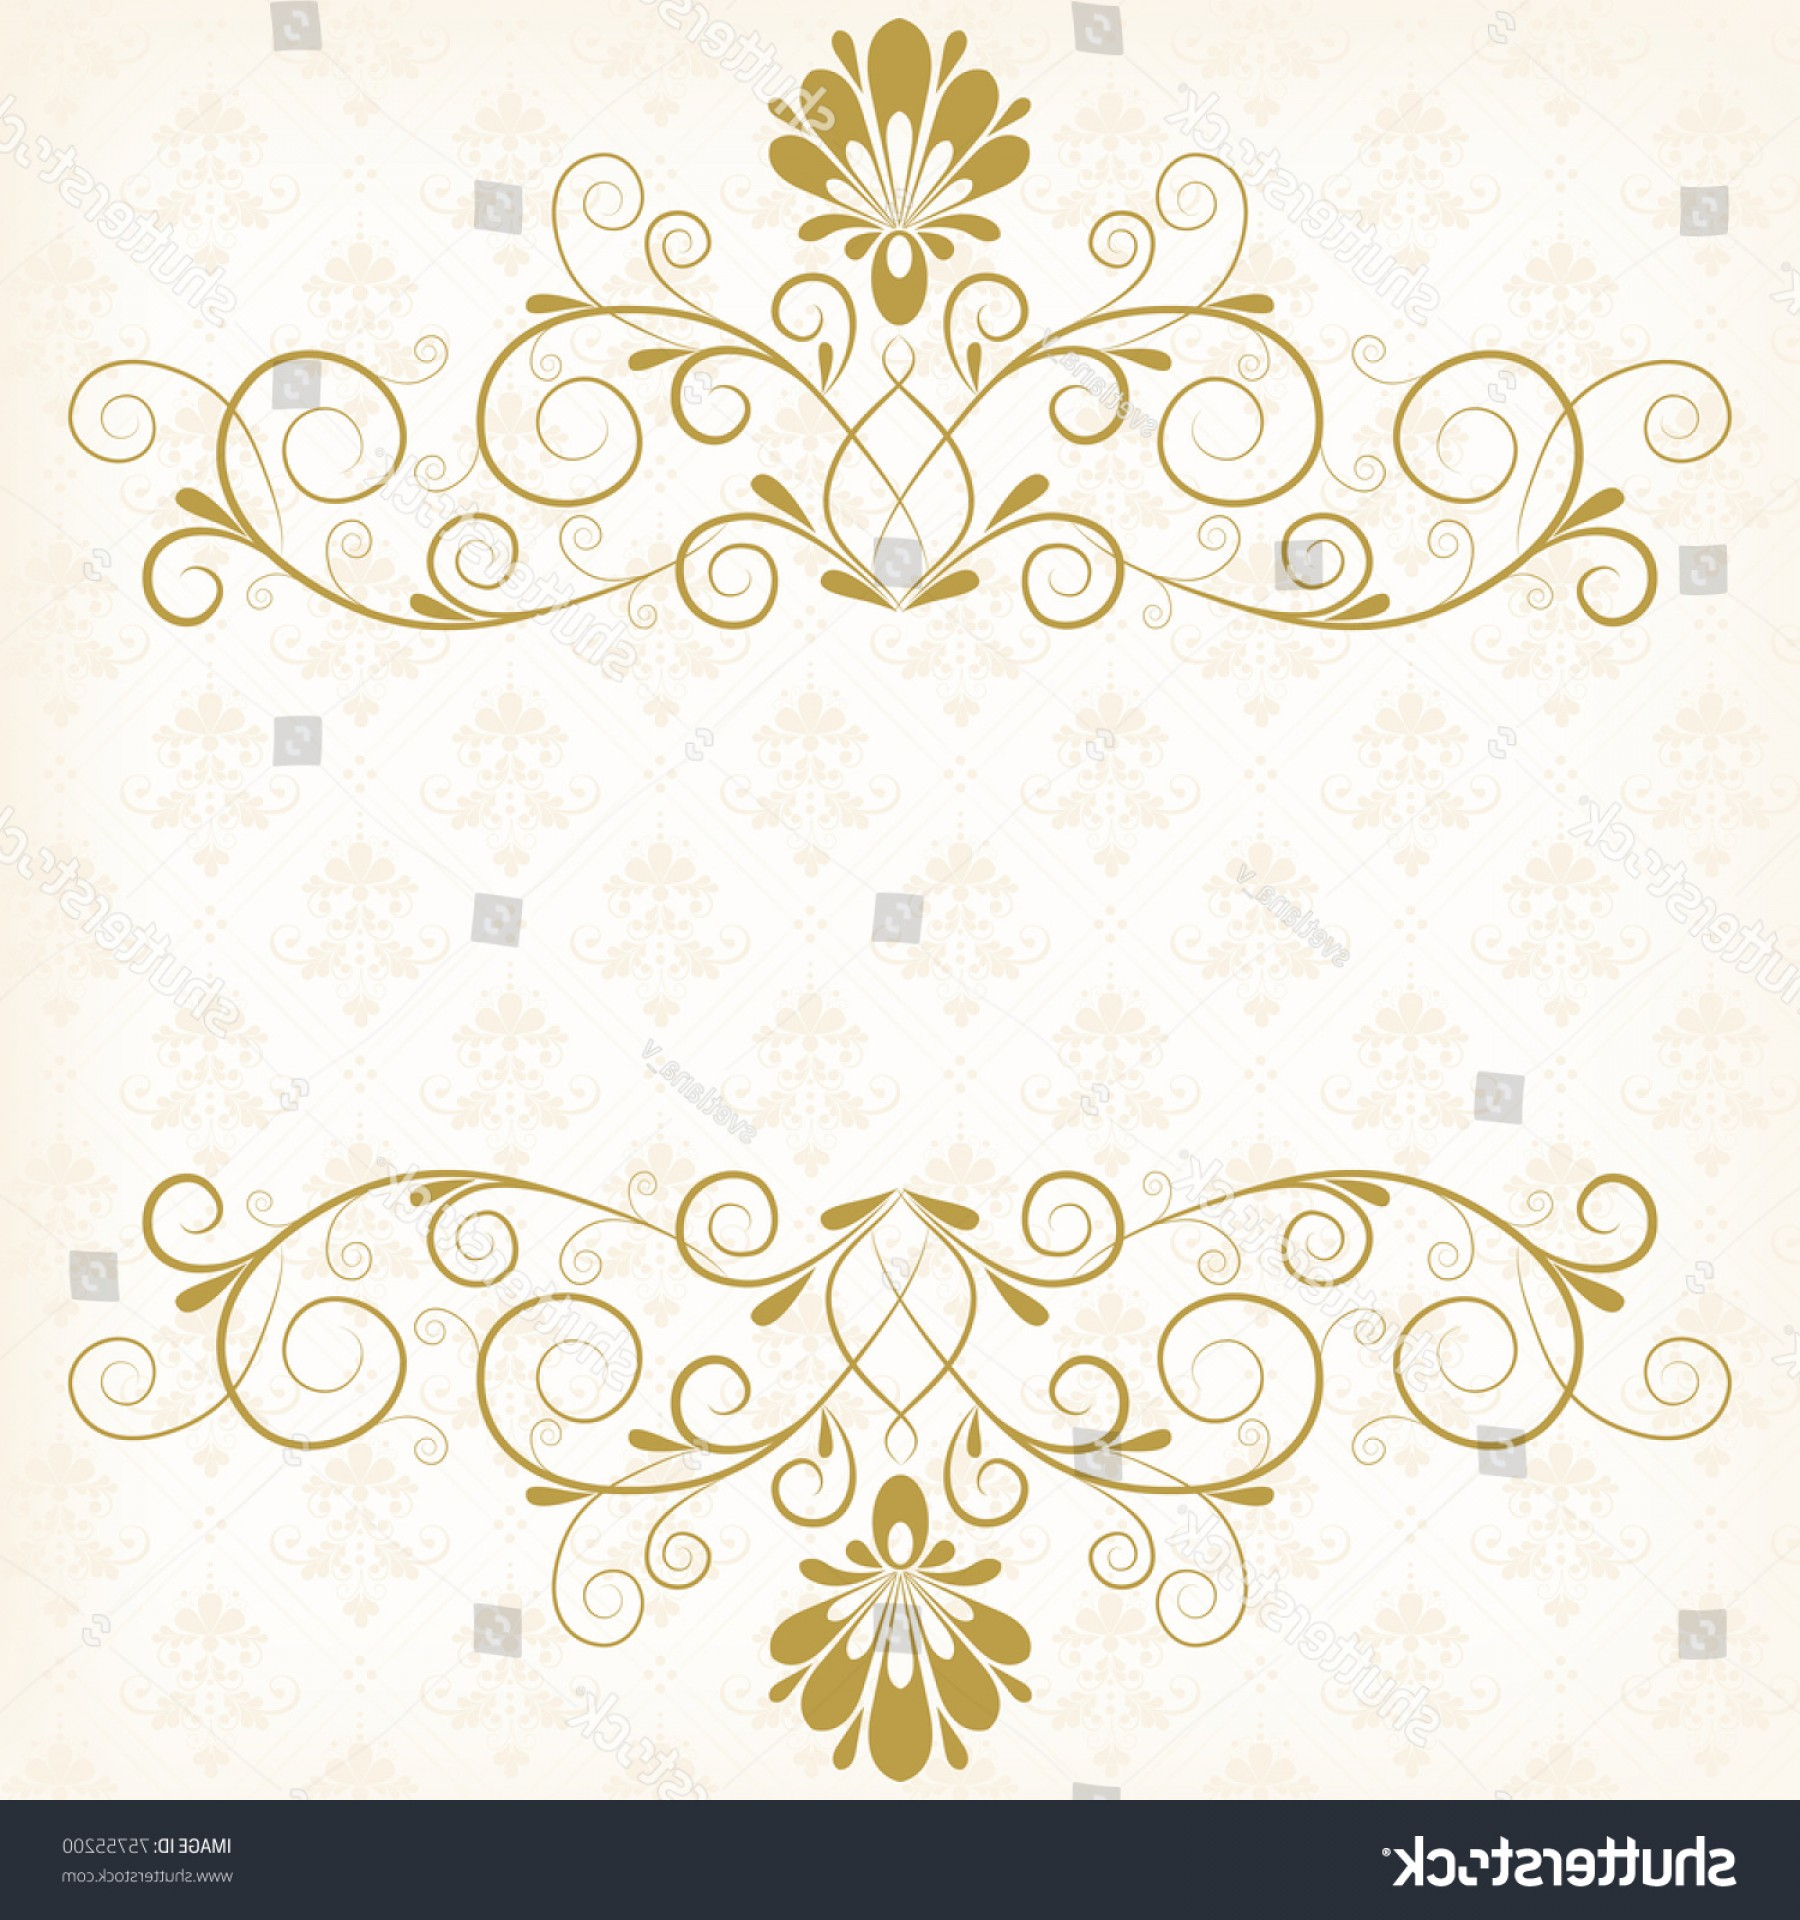 Floral Vector Calligraphy: Stock Vector Vector Calligraphy Vintage Floral Background With Decorative Flowers For Design